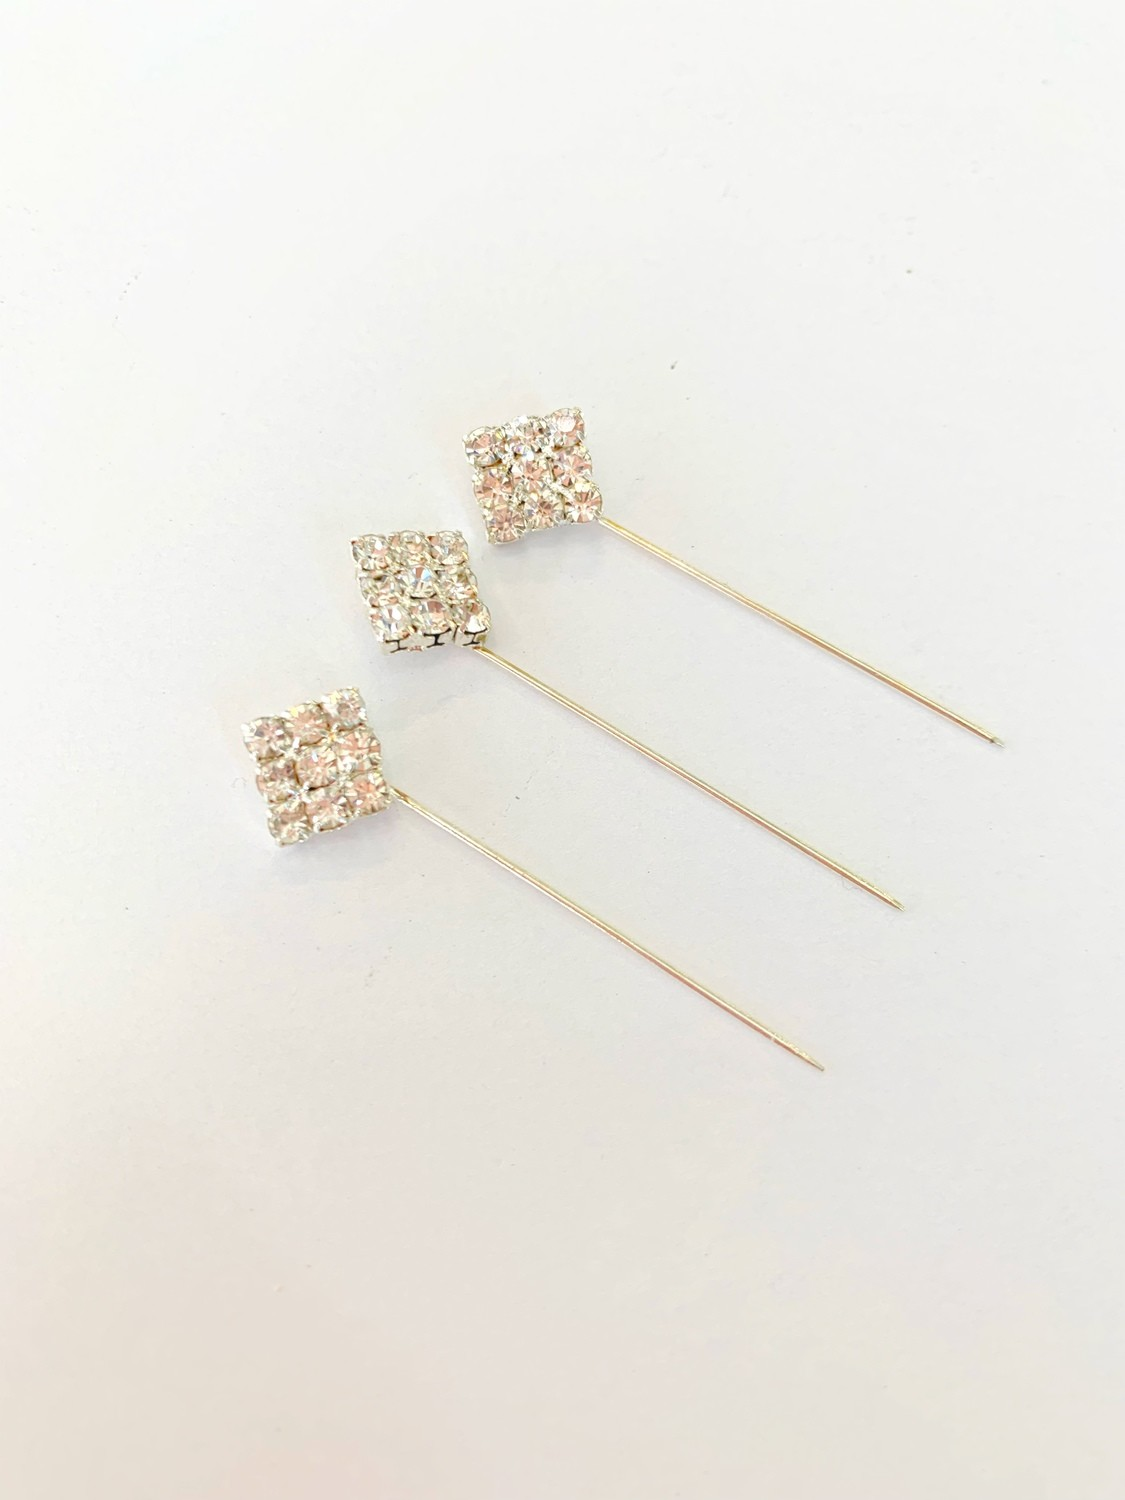 Diamond Shape Pins Pack of 12